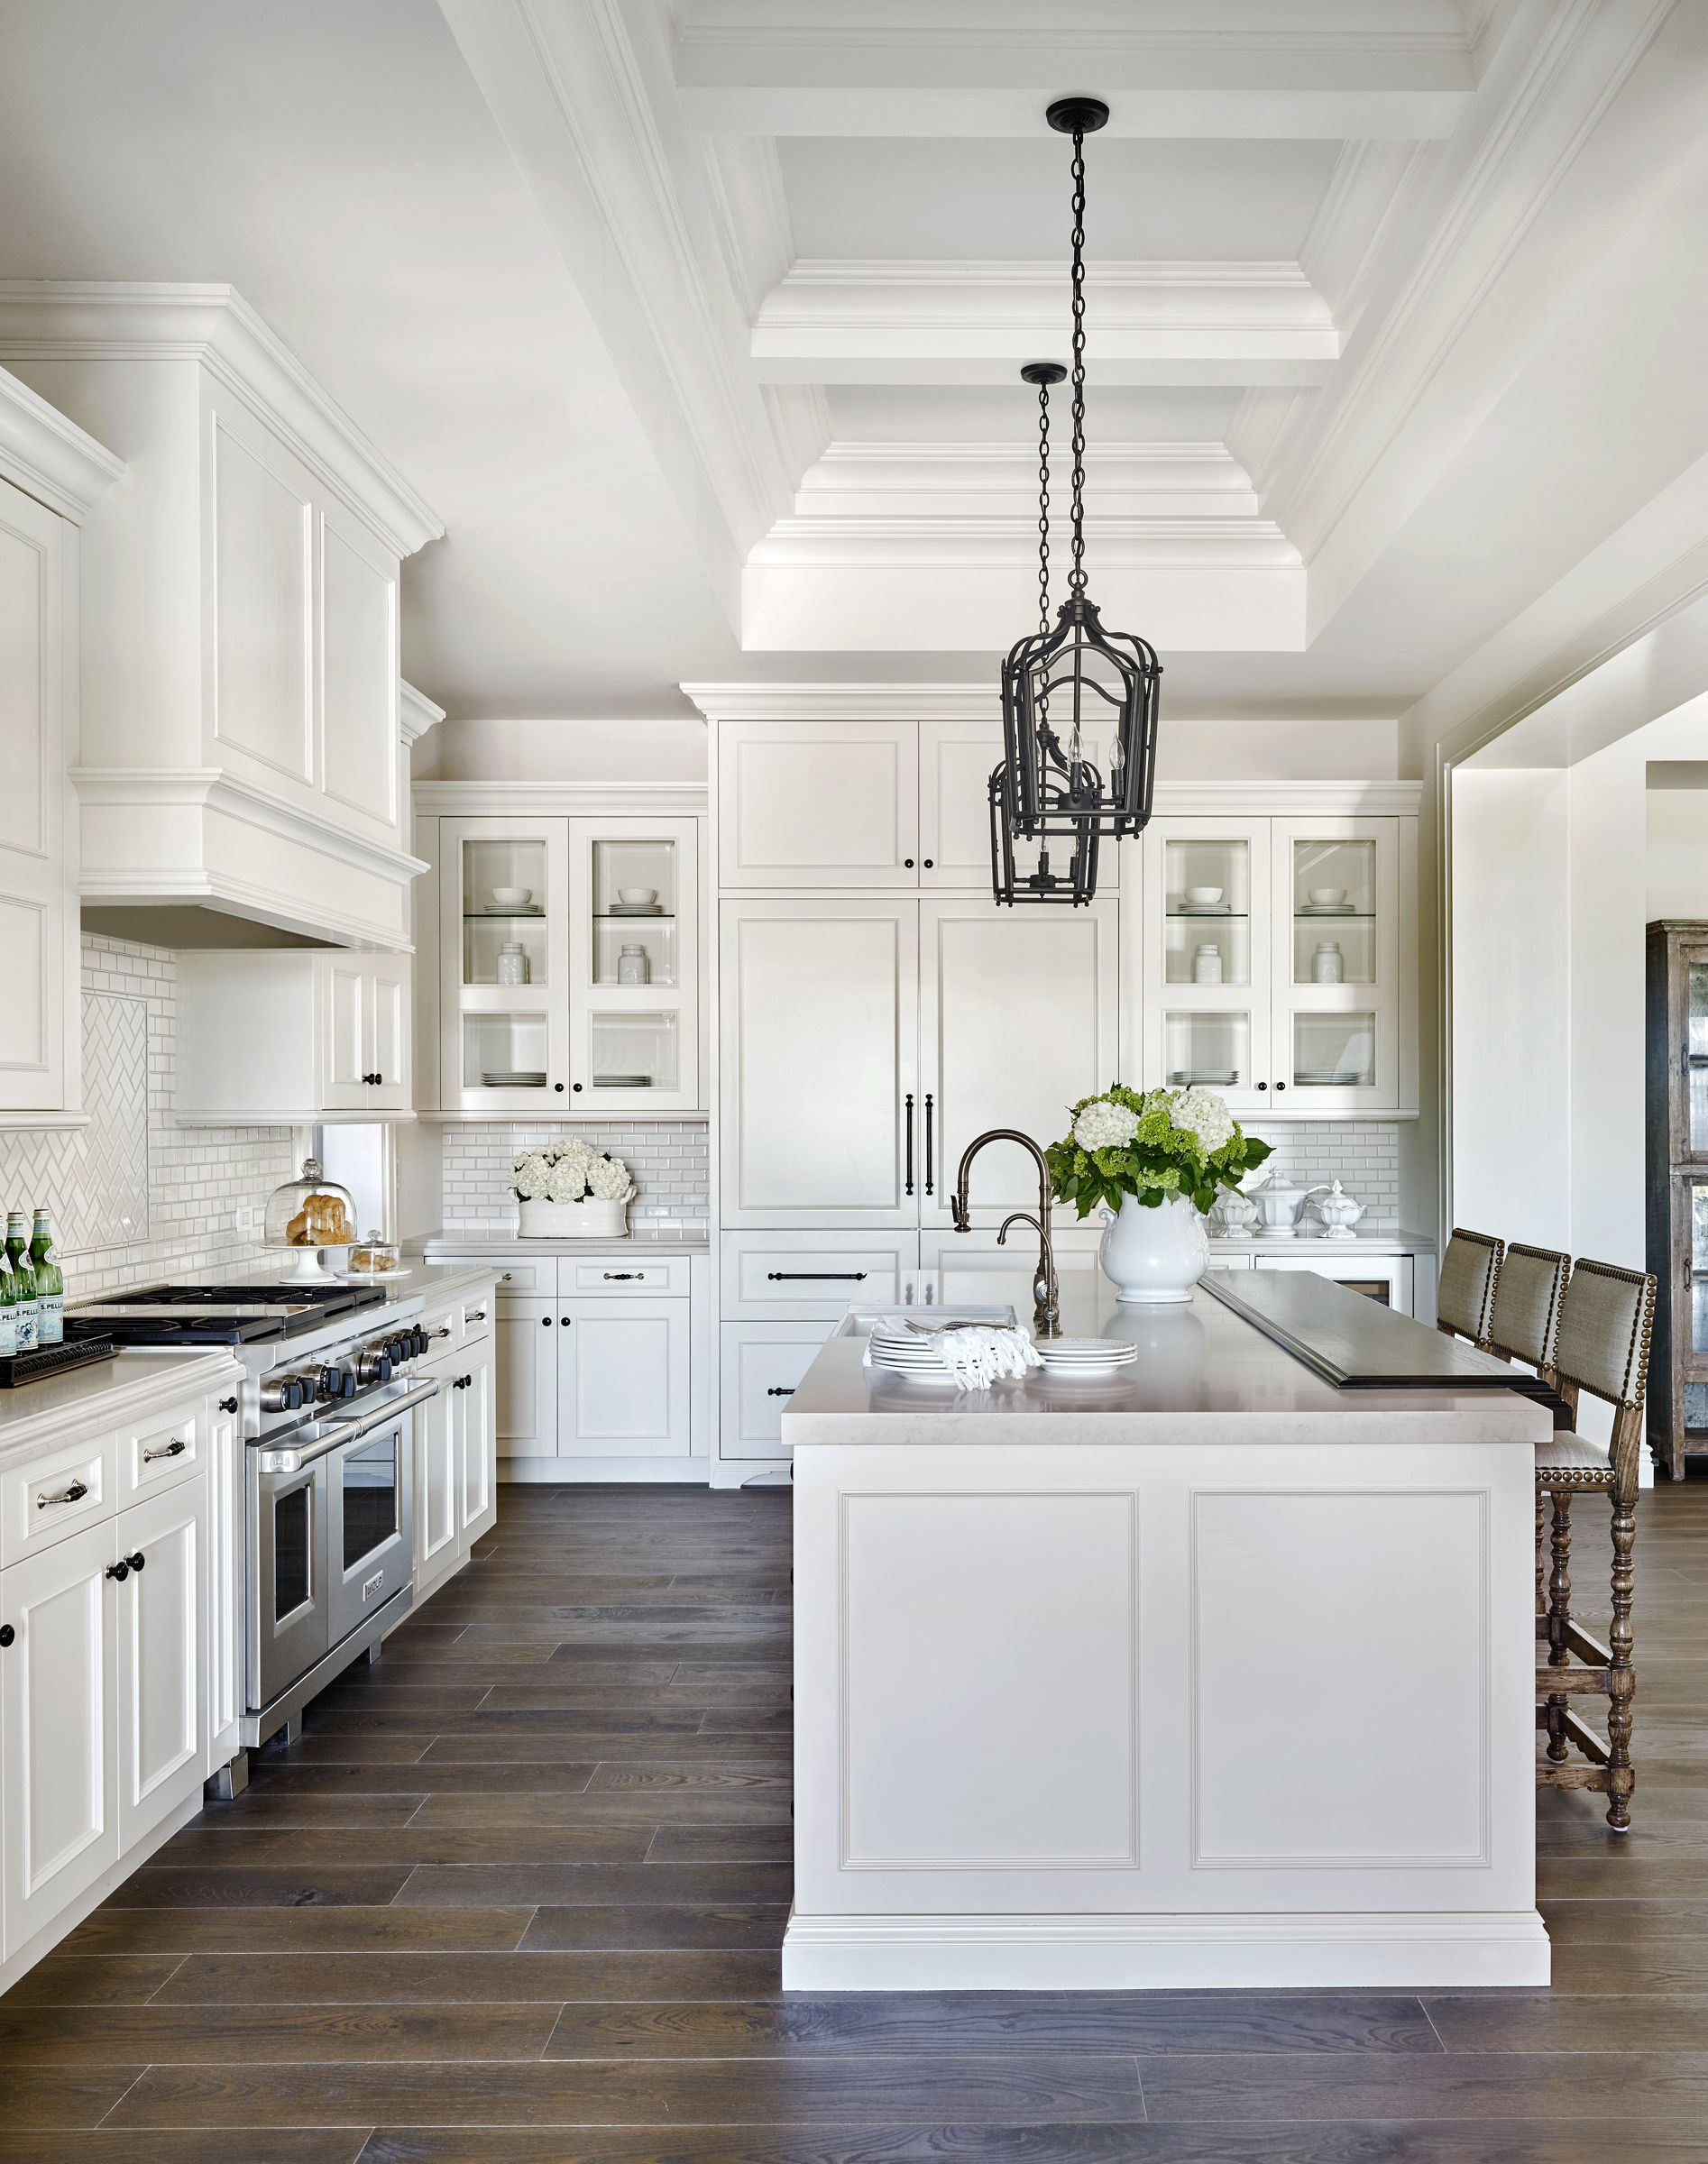 White Raised Panel Kitchen Cabinets with White Mini Subway Tile Backsplash  Kitchens With White Cabinets,